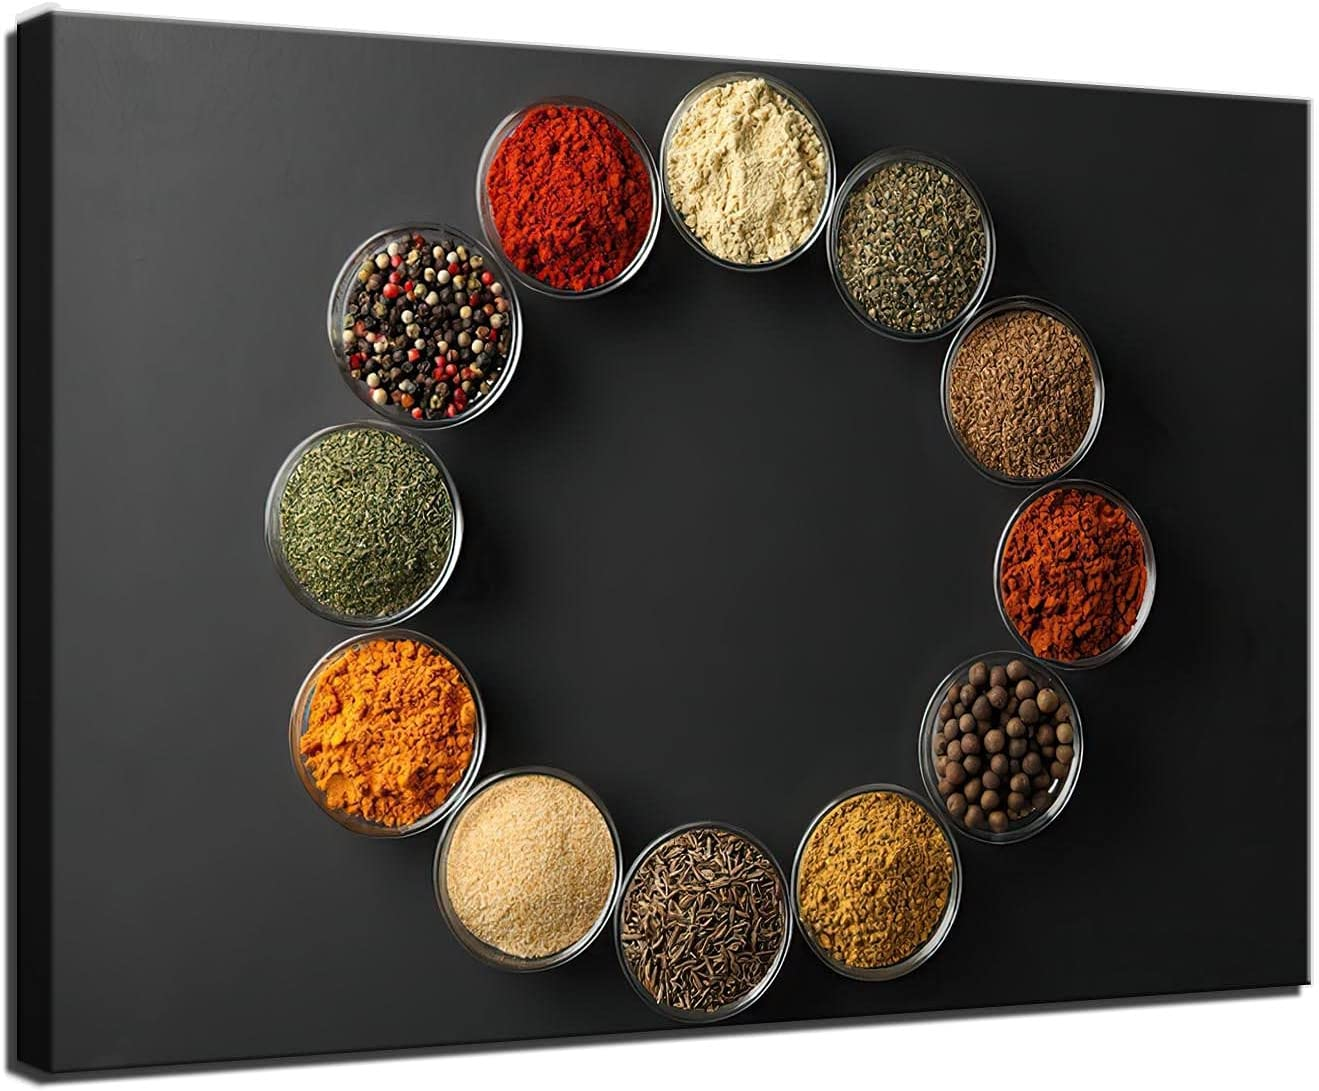 Kitchen Pictures Wall Decor Spice and Spoon Wall Art Painting Food The Picture Print on Canvas for Home Dining Room Decoration (20